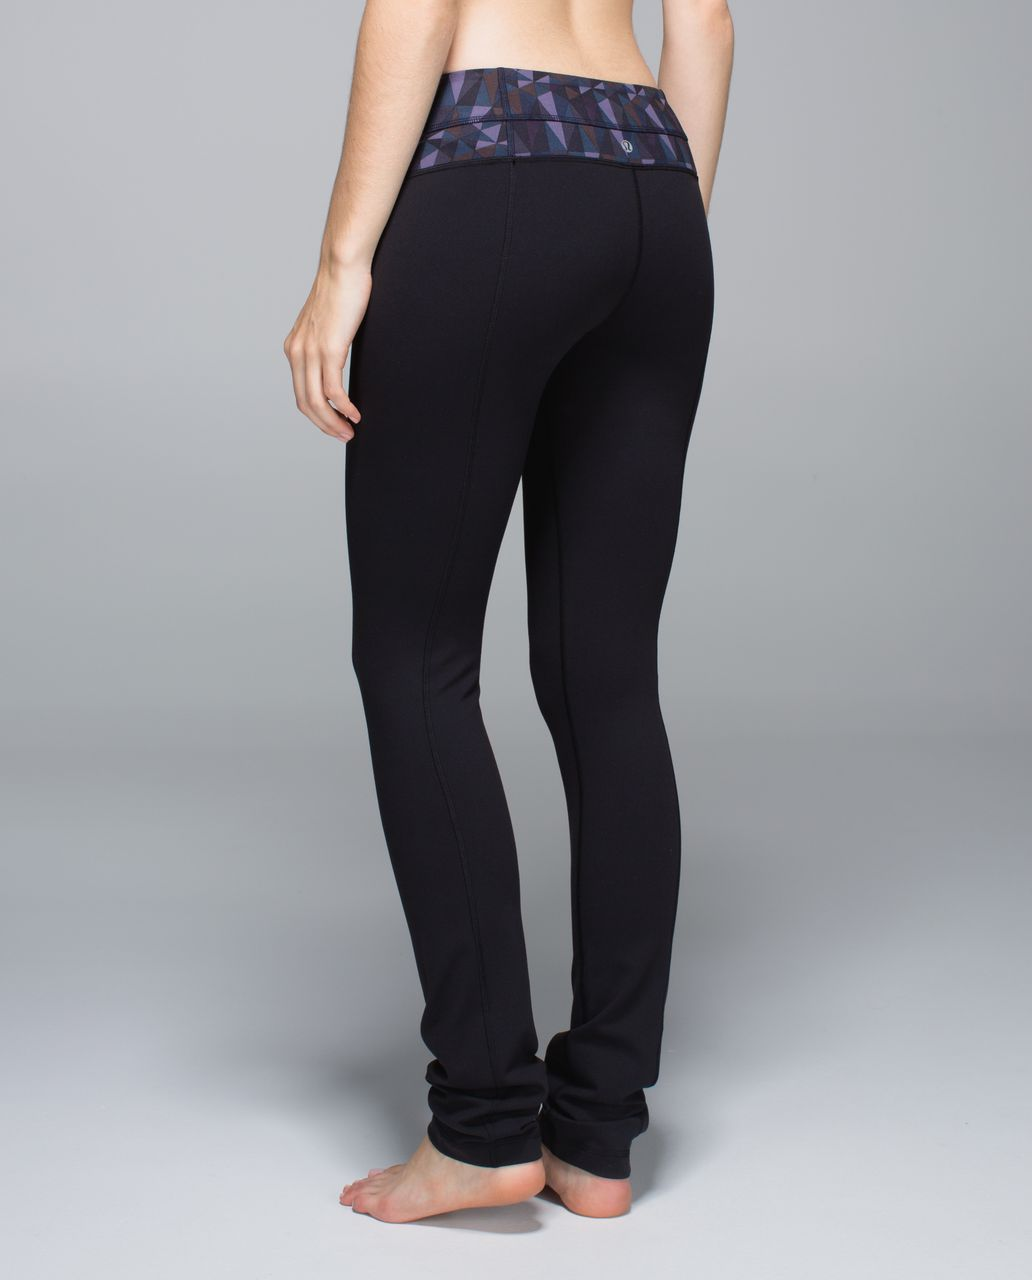 4d781afbc Lululemon Skinny Groove Pant  Full-On Luon - Black   Stained Glass Love  Nightfall Black - lulu fanatics